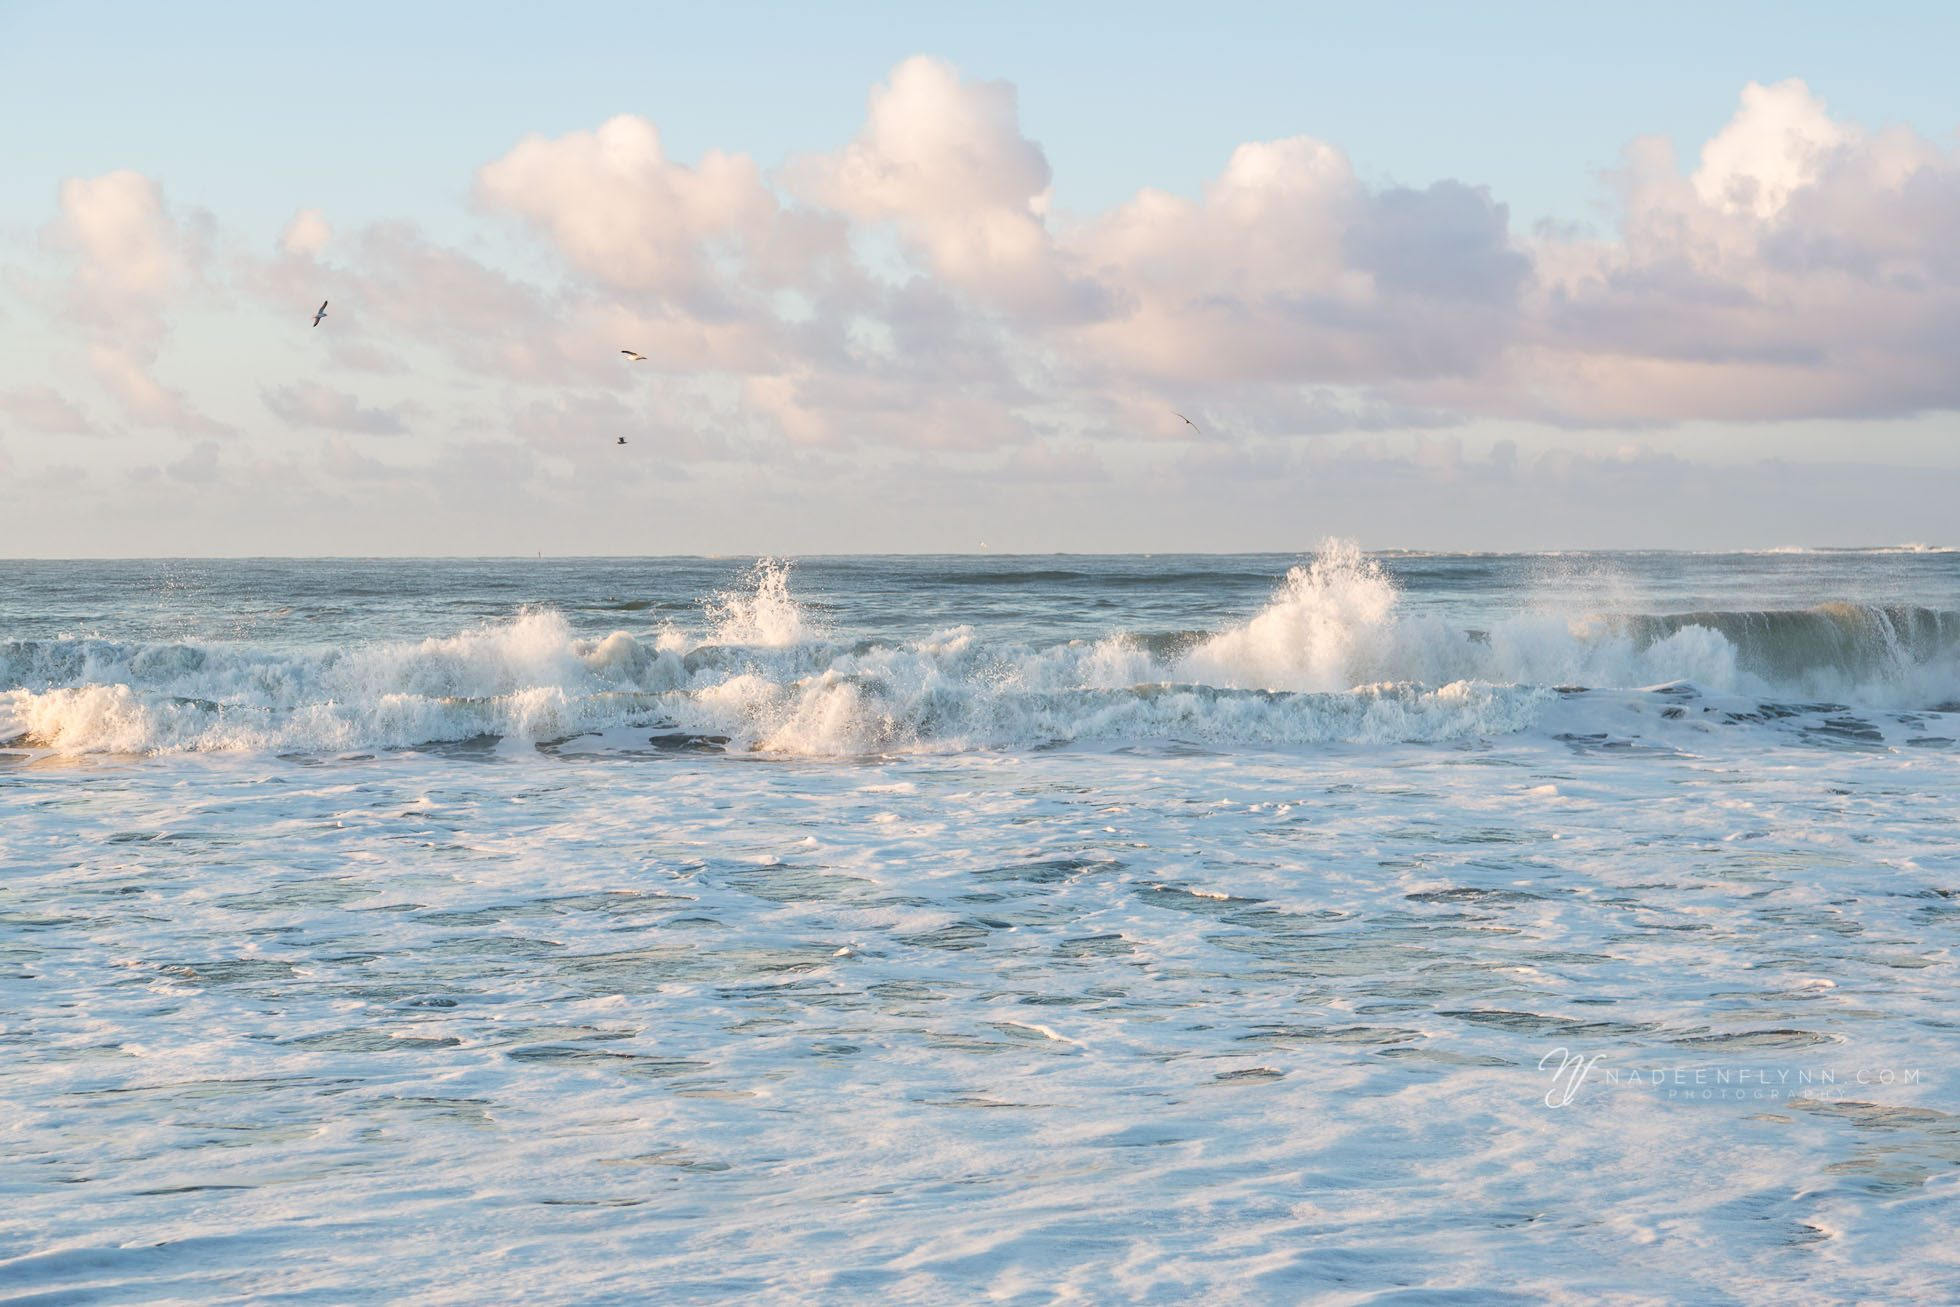 clouds mimicking the ocean waves